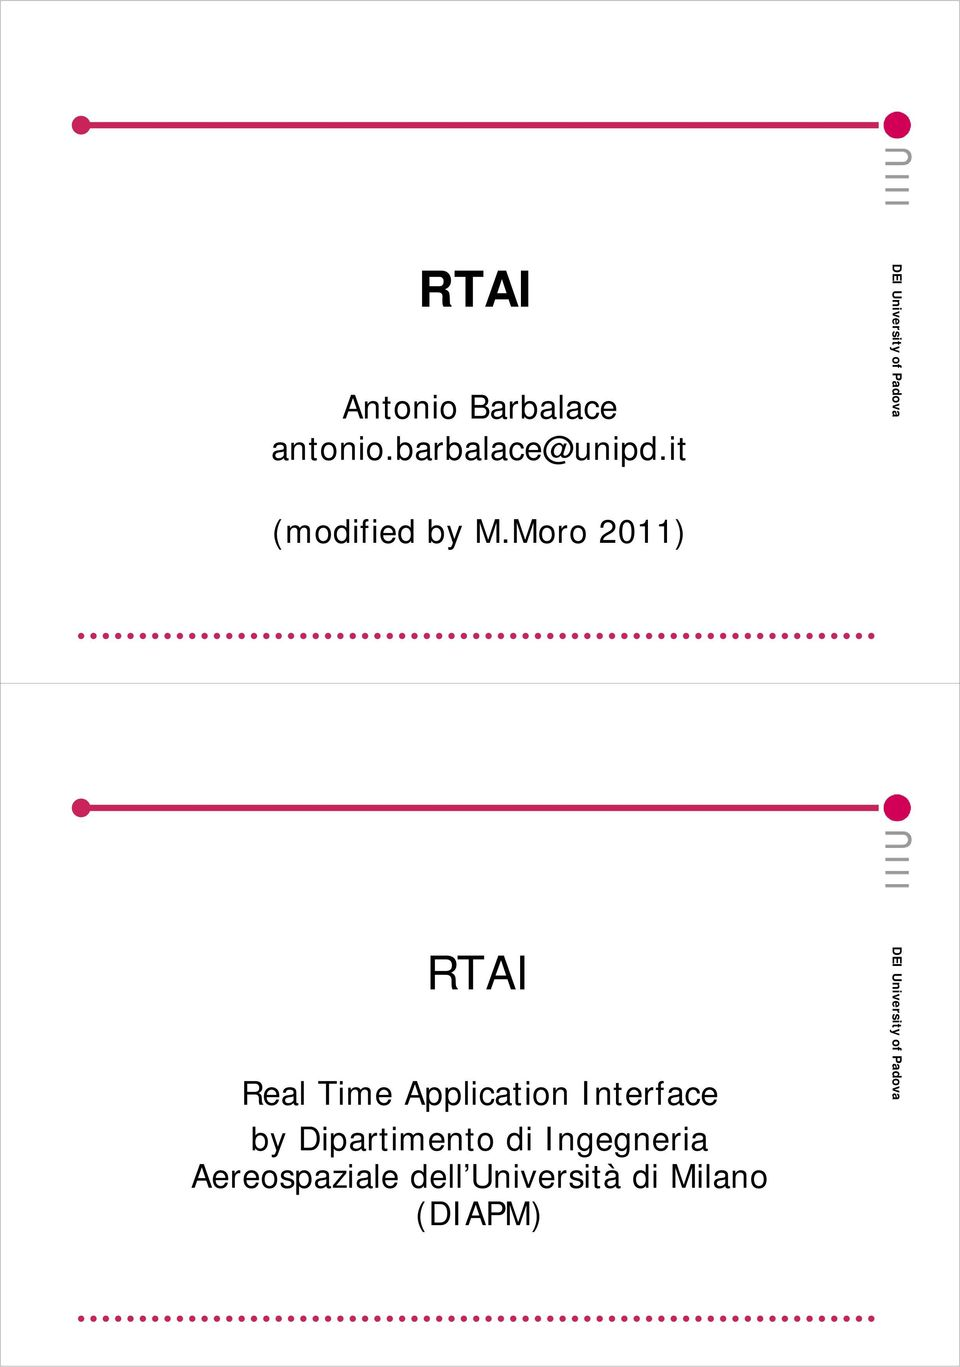 Moro 2011) Real Time Application Interface